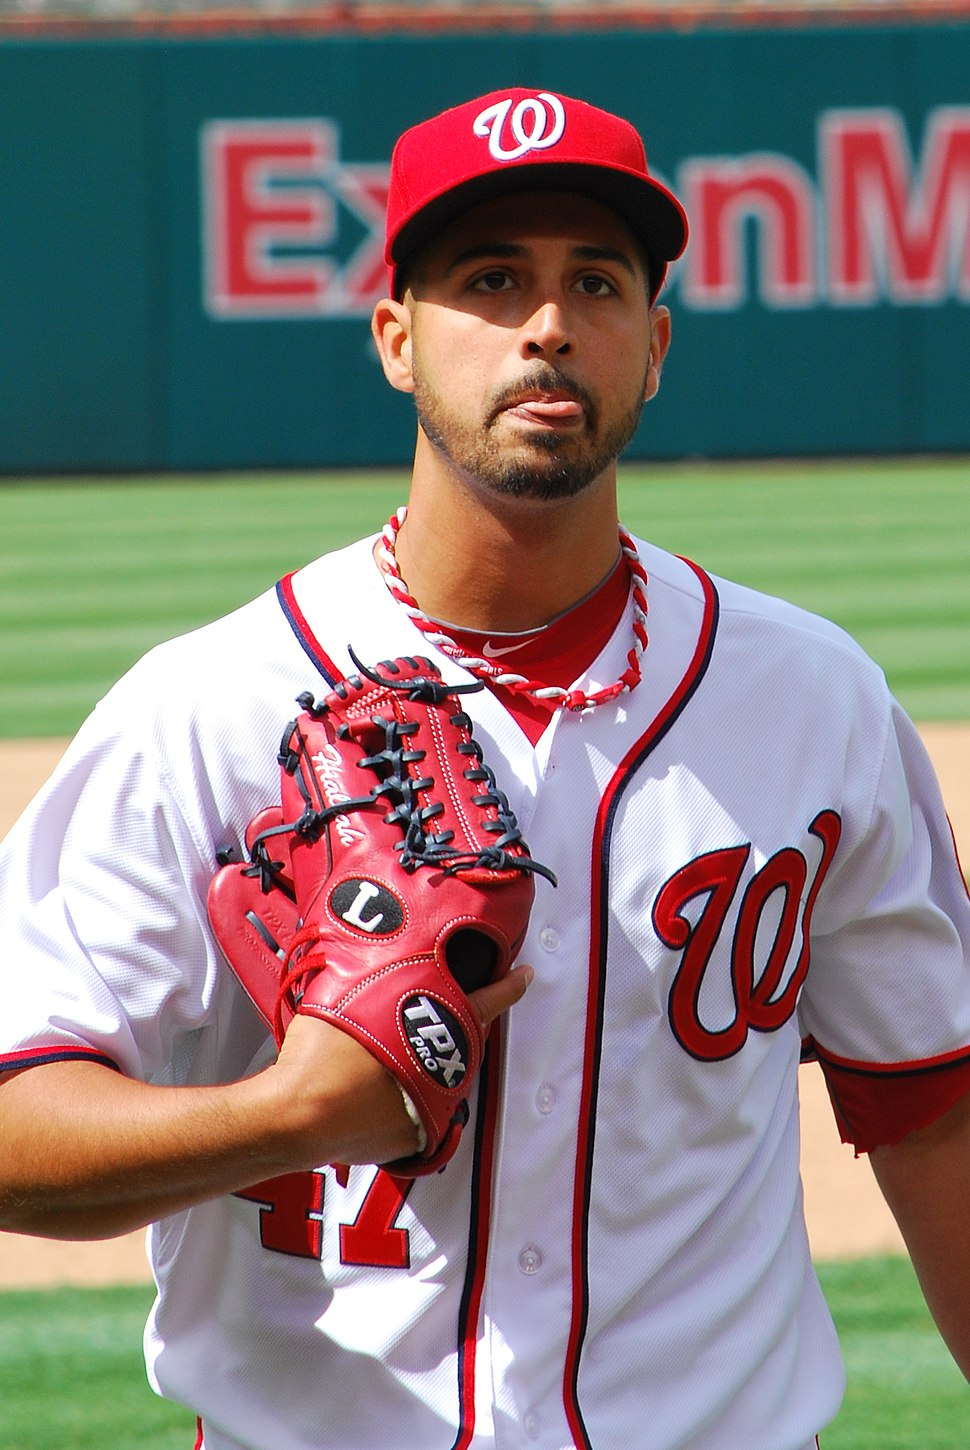 Gio Gonzalez on April 12, 2012